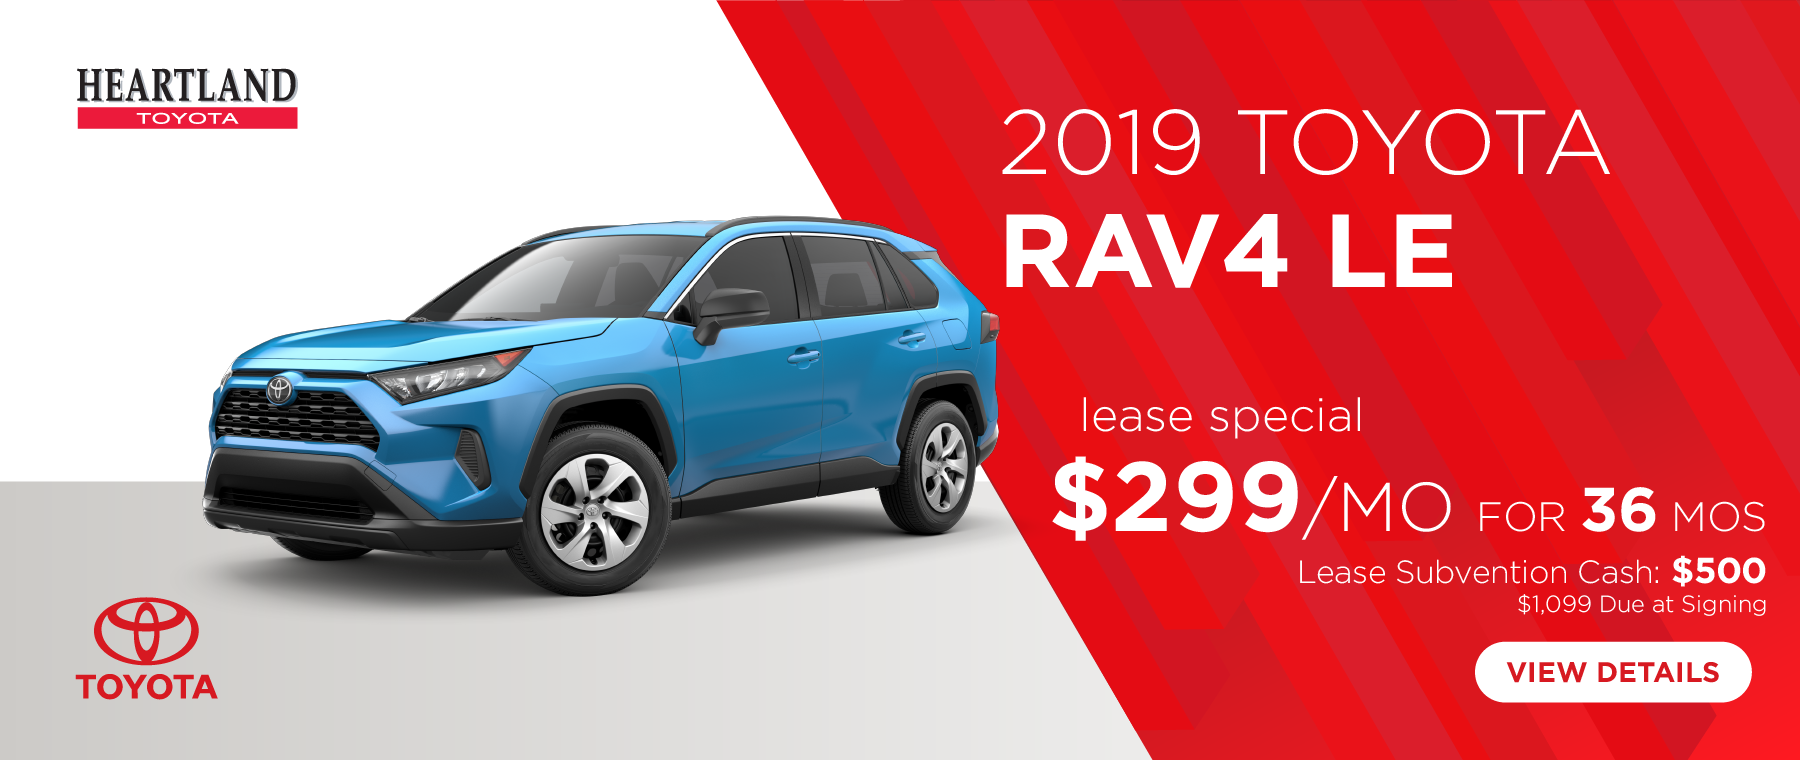 2019 Toyota RAV4 LE $299/mo. For 36 months* $1,099 Due at Signing  Lease Subvention Cash: $500   *Offer valid on 2019 Toyota RAV4 LE (4432). $299 per mo. for 36 months. Lease with $1,099 due at signing; includes a $695 acquisition fee. Valid on VIN: 2T3F1RFV3KW056138, 2T3F1RFV5KW056352, 2T3F1RFVXKW051793. MSRP $28,085. Deal #401144. Plus, Lease Subvention Cash: $500. Subject to credit approval. No Security deposit required. Excludes taxes, title, and fees. 36 monthly payments required. Not all lessees will qualify for lowest payment through participating lender. Residency restrictions apply. Lessee responsible for mileage over 10,000 miles per year at $0.12/mile per year. Option to purchase at lease end. A negotiable dealer documentary service fee of up to $150 may be added to the sale price or capitalized cost. Offer expires 7/31/2019.